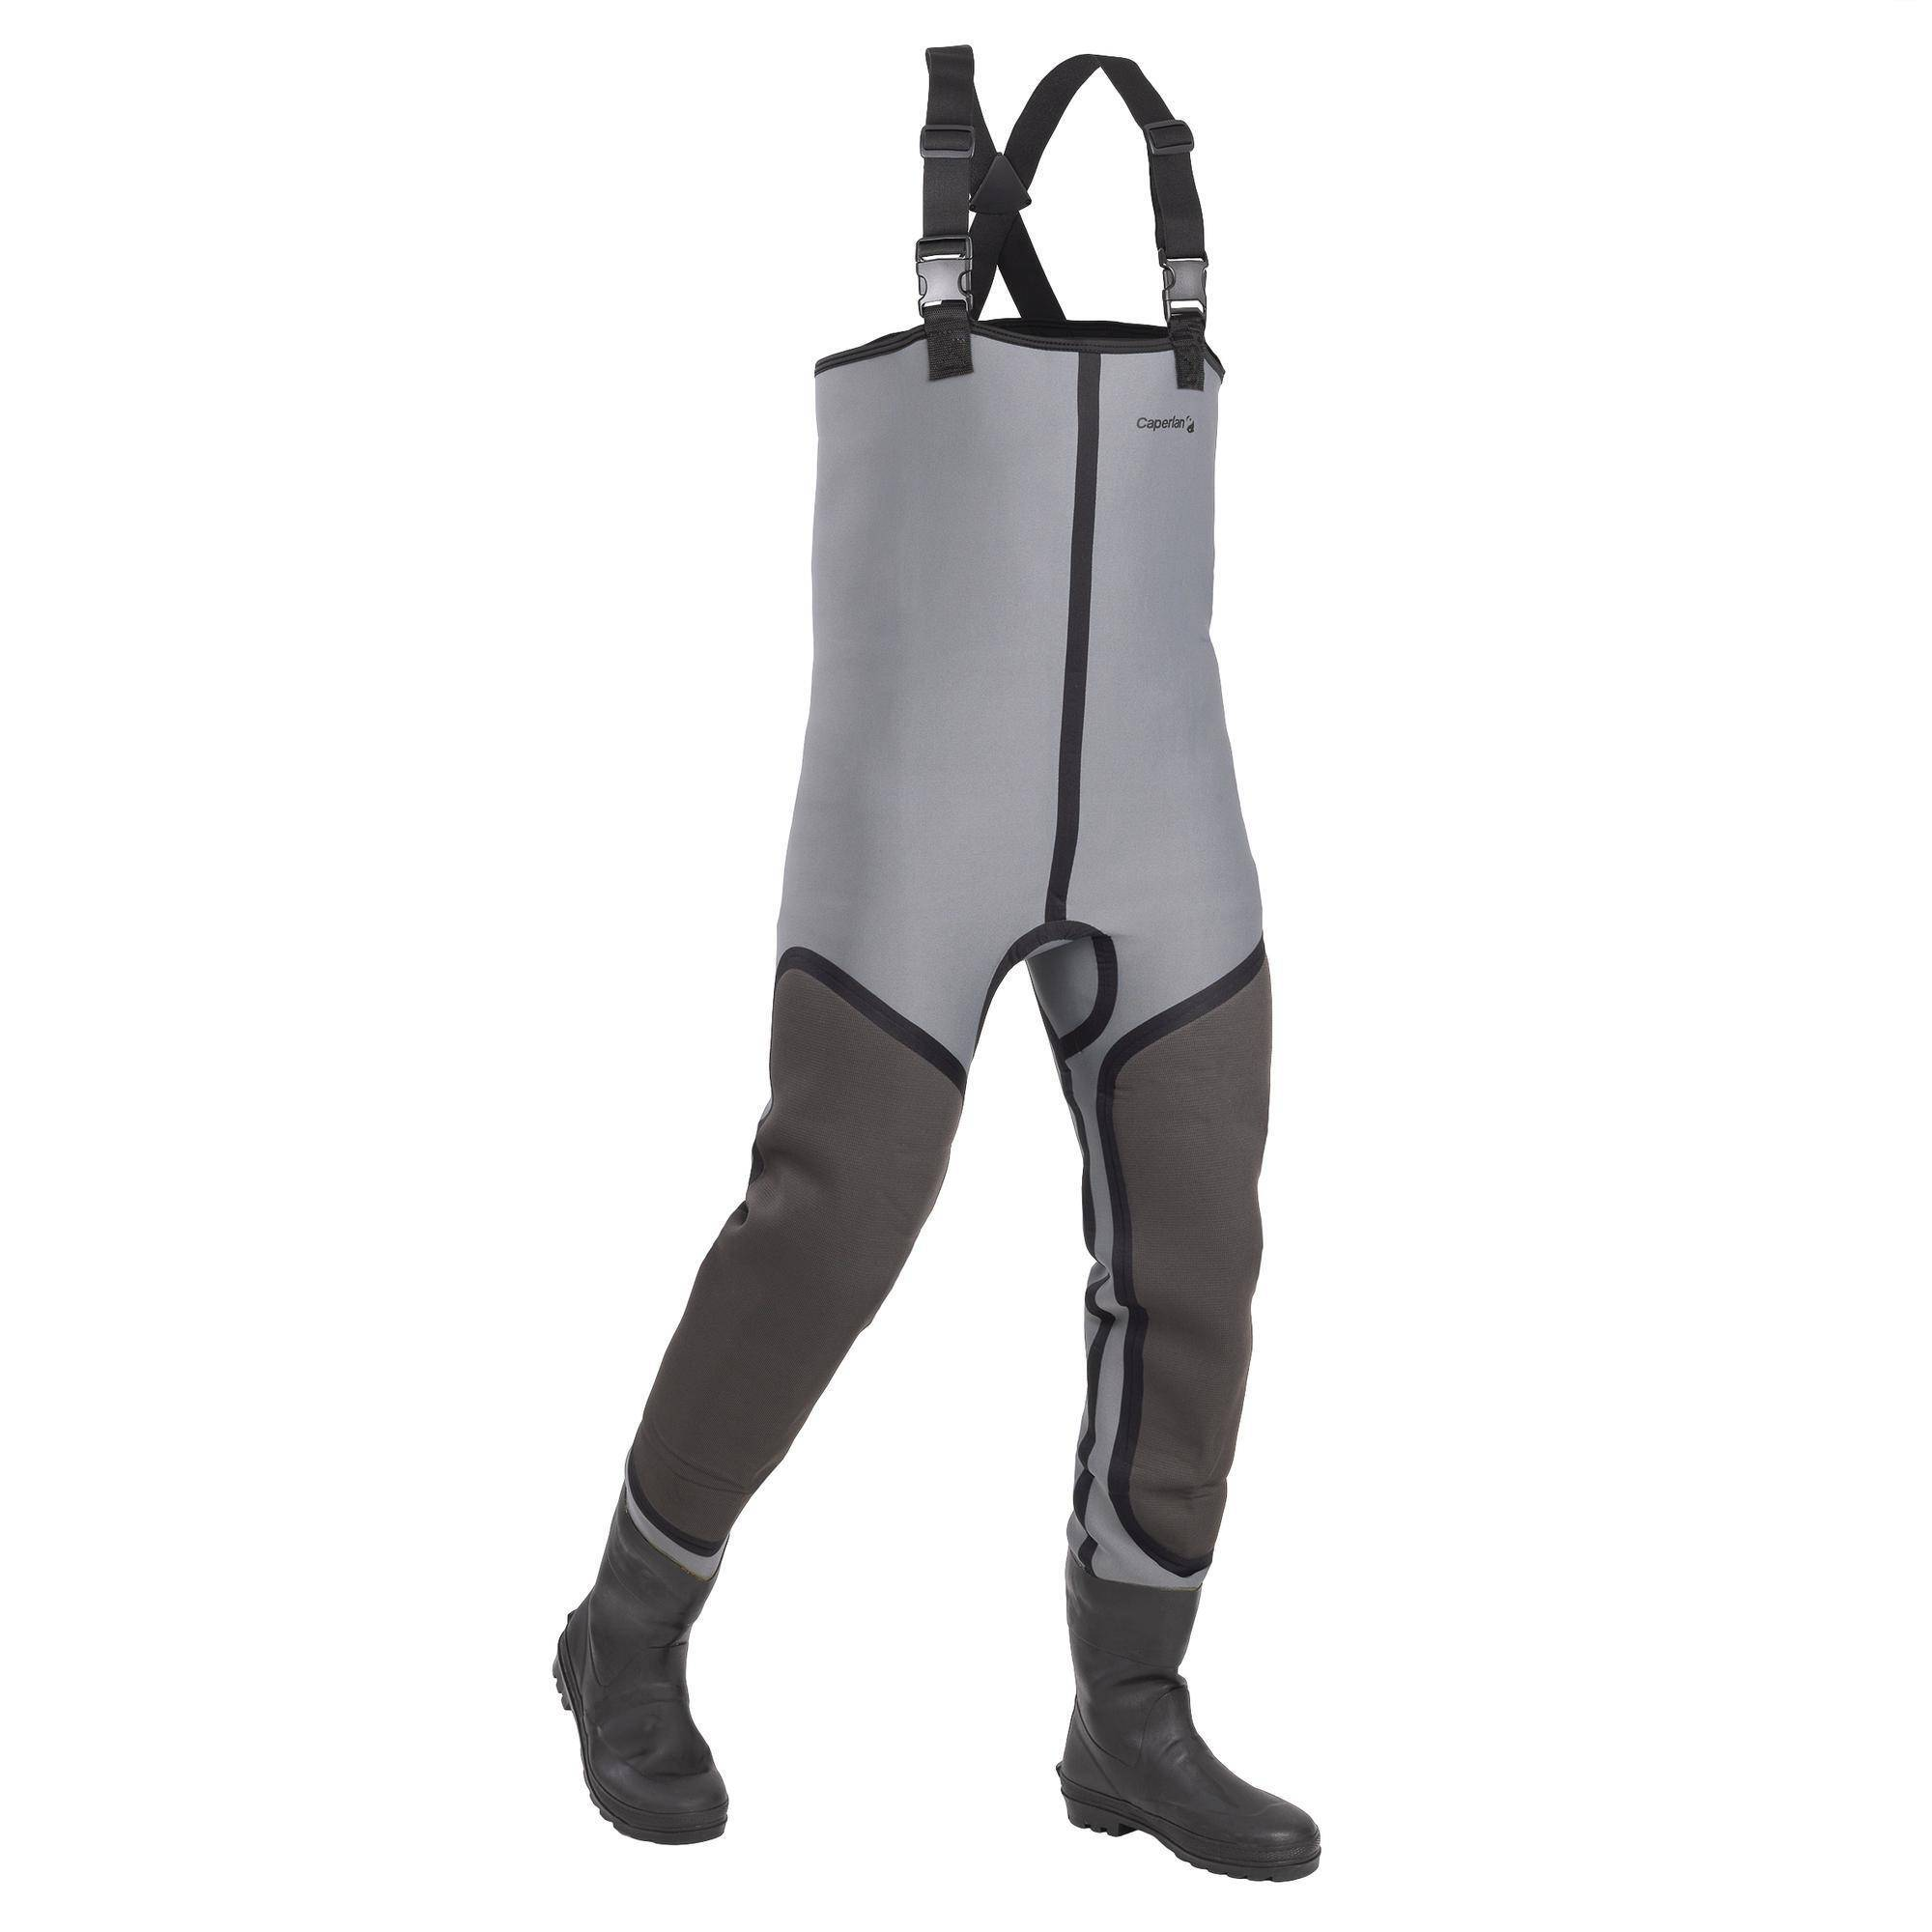 CAPERLAN Waders Pêche WDS-3 Thermo - CAPERLAN - 42/43